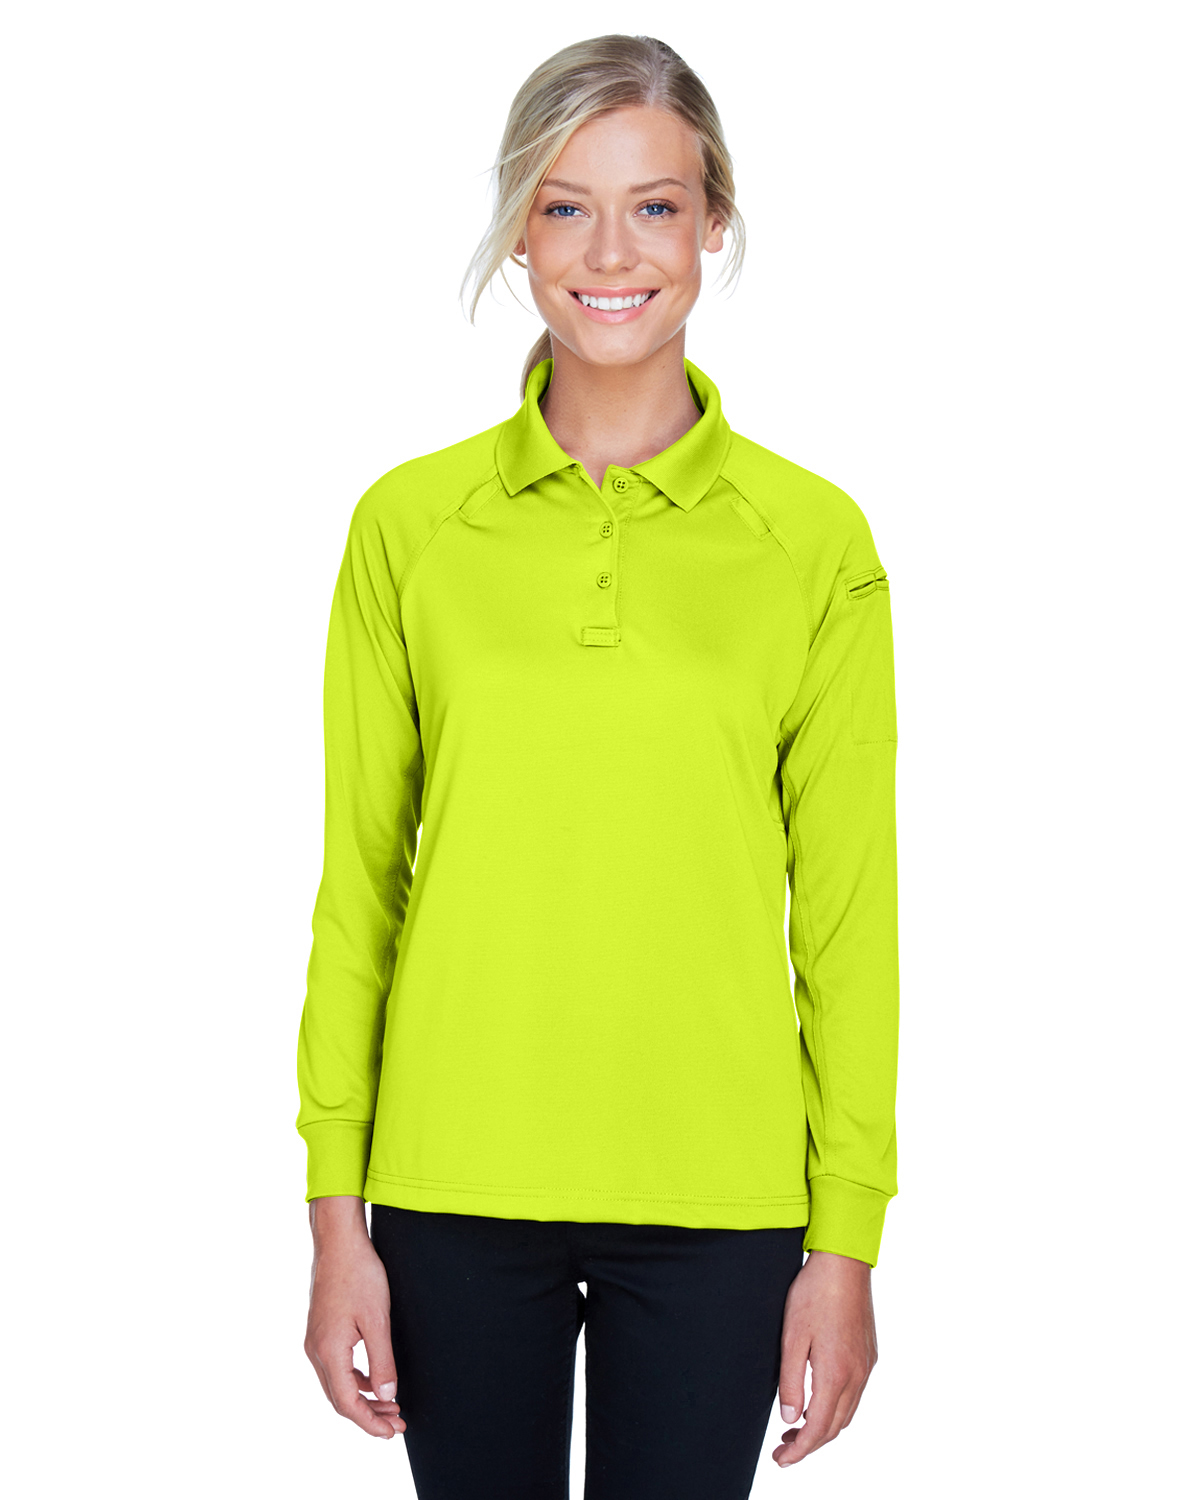 Ladies' Tactical Long-Sleeve Performance Polo